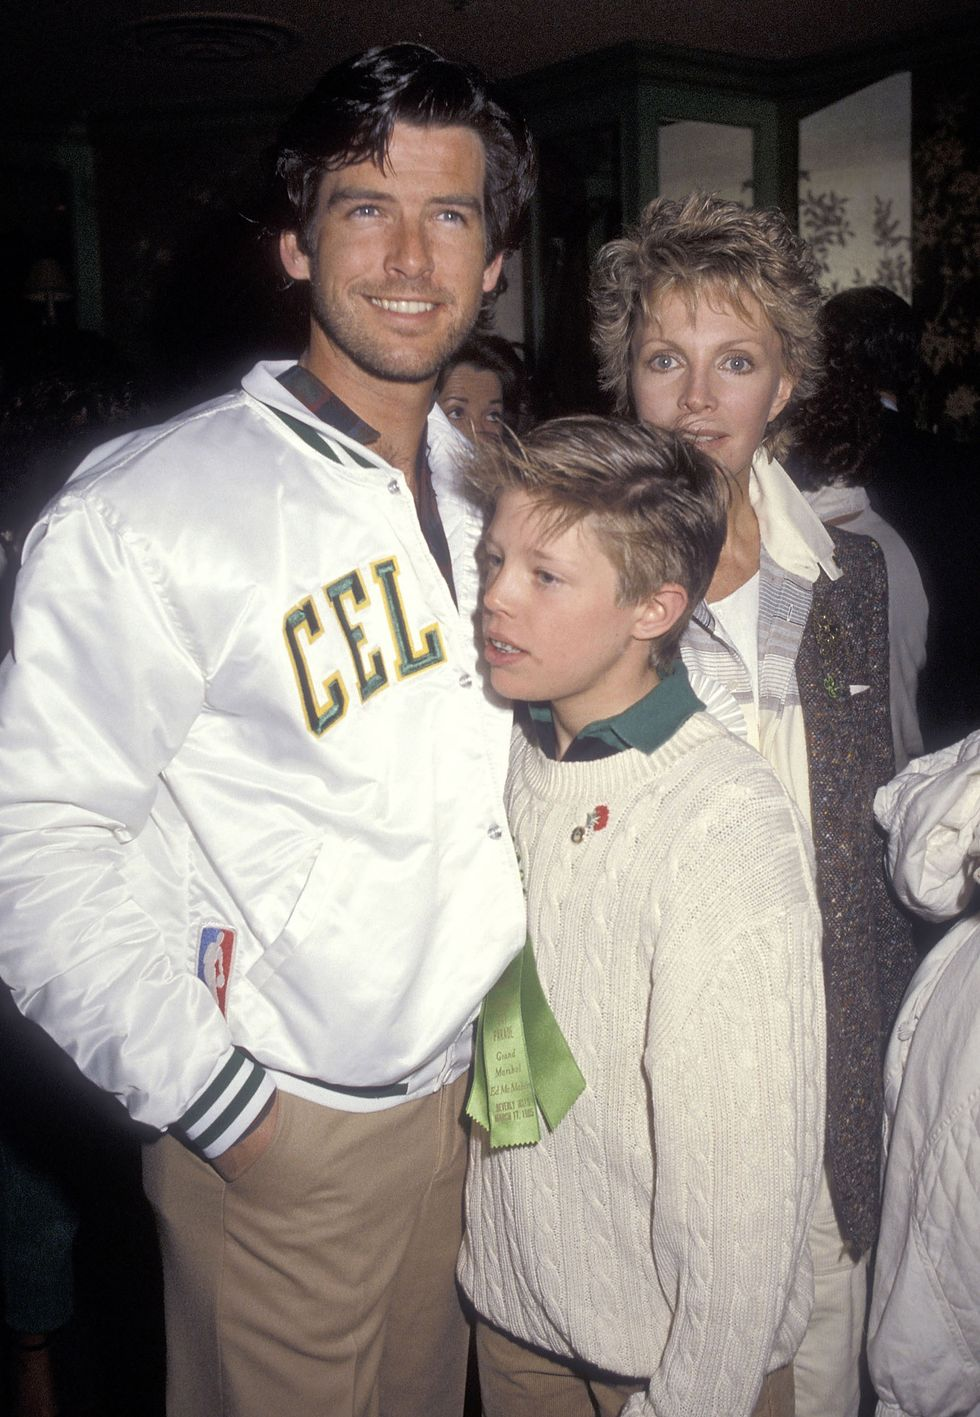 Pierce Brosnan, who is the only Irishman to play James Bond, with his wife Cassandra Harris and son Christopher Harris attending the Beverly Hills St. Patrick's Day Parade Celebrity Brunch on March 17, 1985 at Jimmy's Restaurant in Beverly Hills, California.